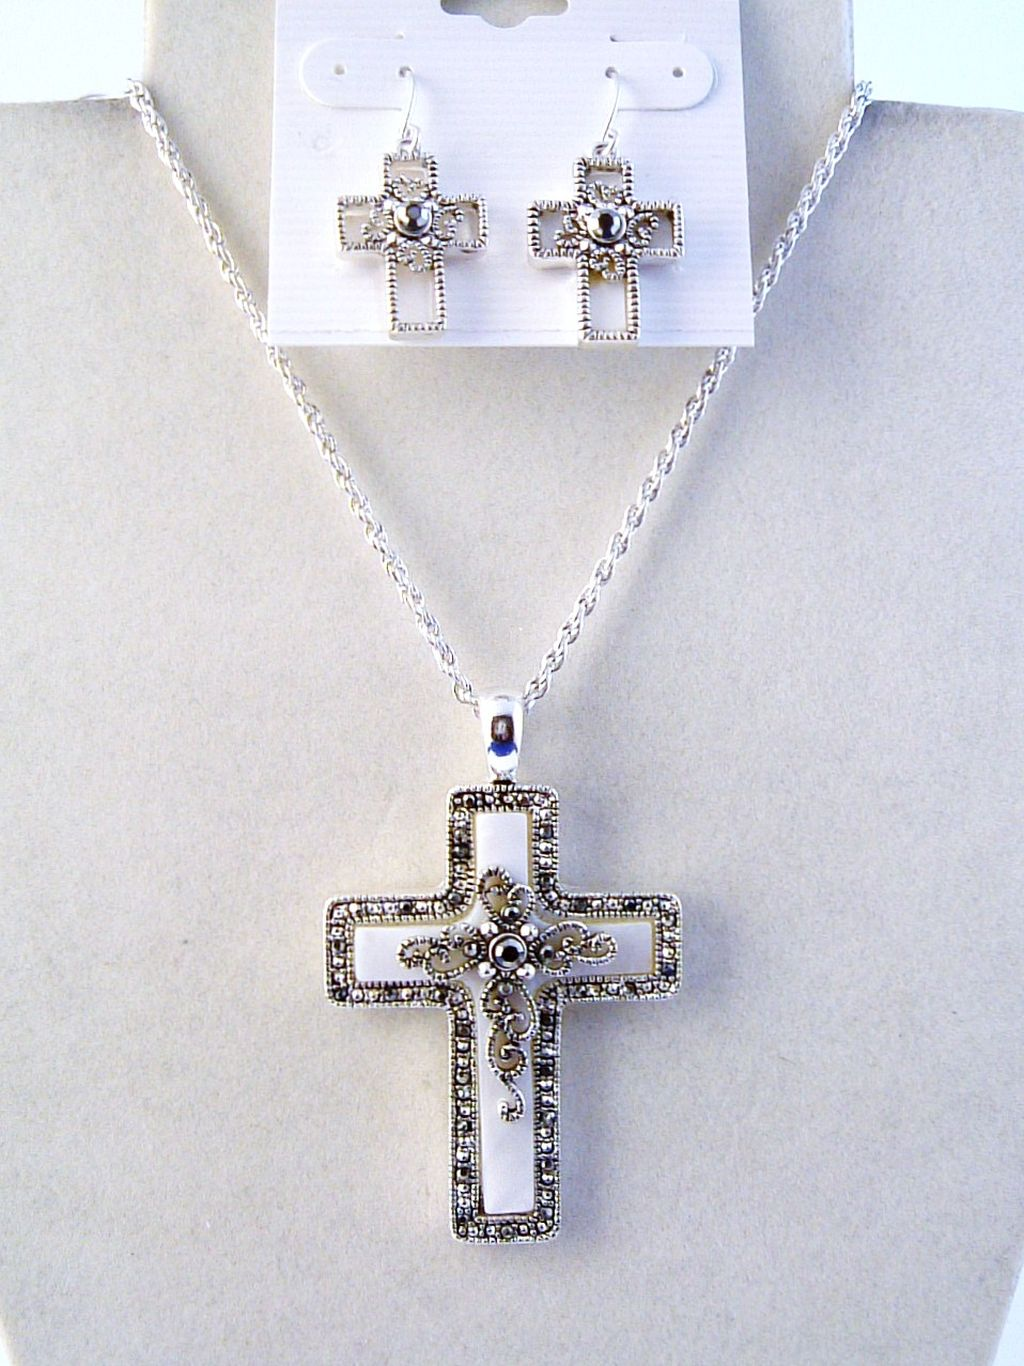 Filigree Cross Pendant Mother-of-Pearl Necklace Earrings Jewelry Set